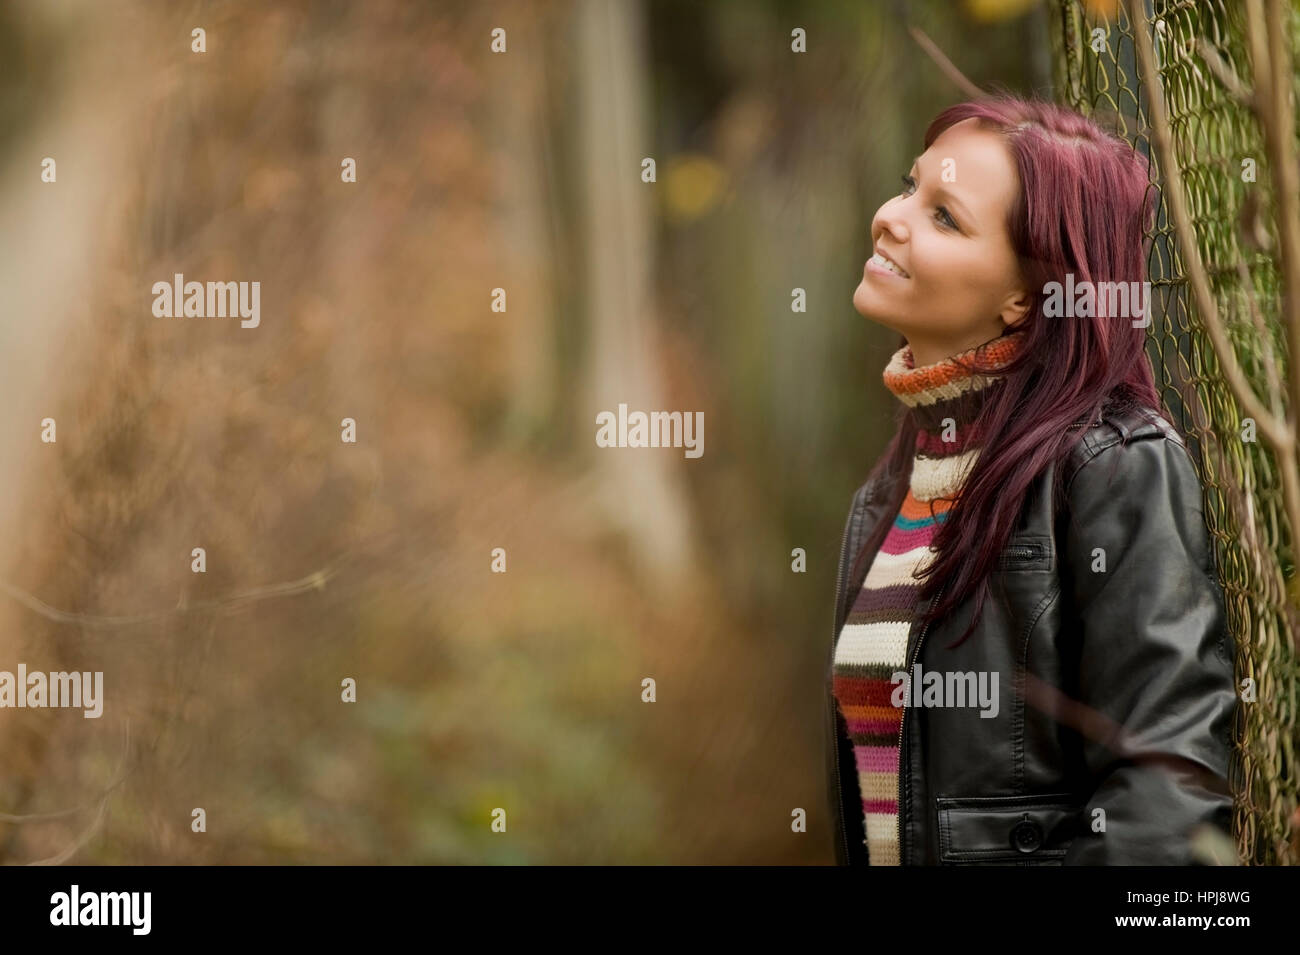 Model released , Rothaarige, junge Frau im Herbst - red haired woman in autumn - Stock Image